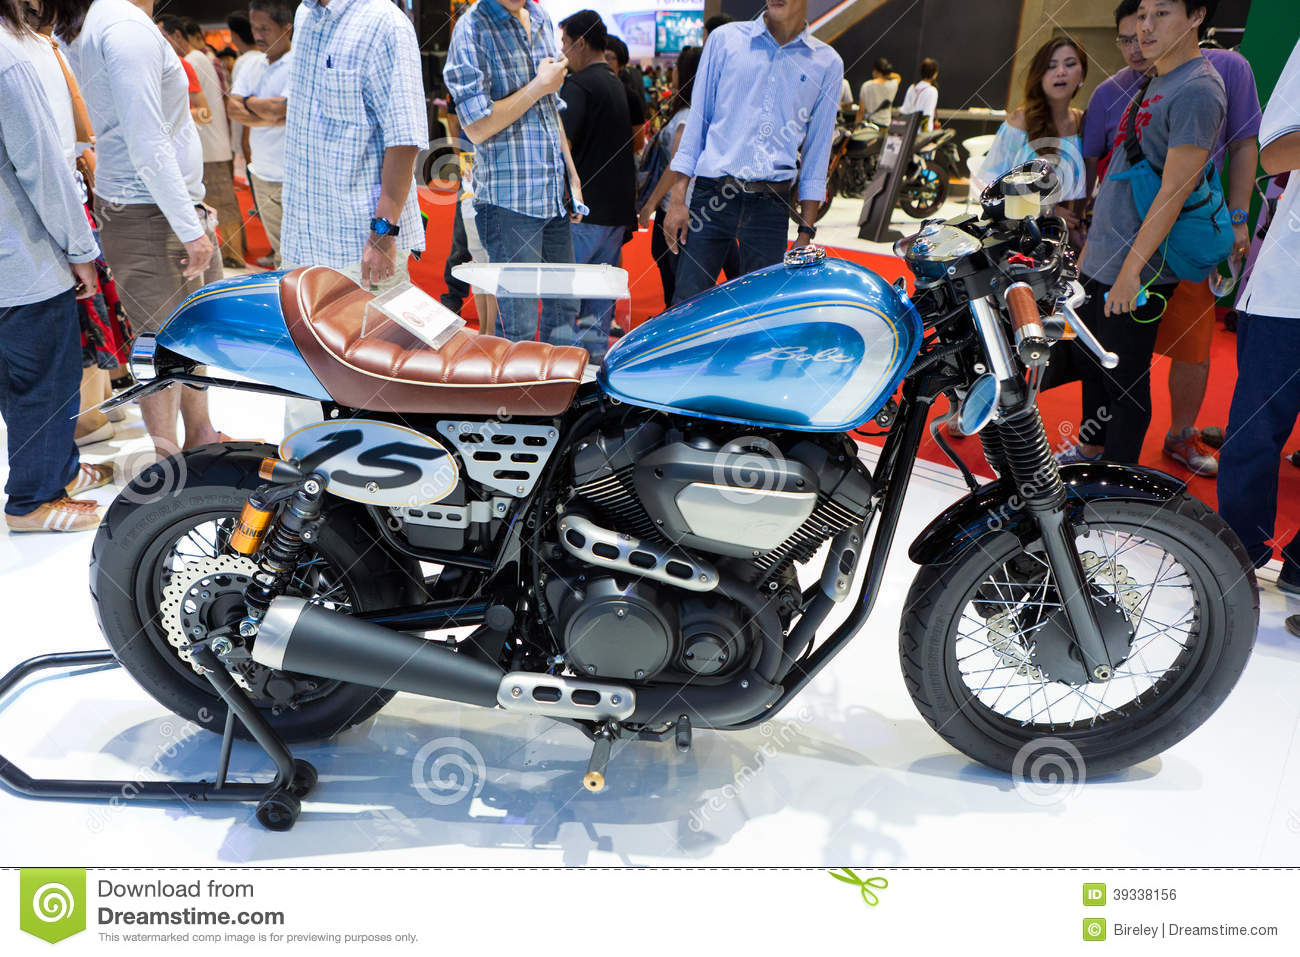 Yamaha bolt custom cafe motorcycle editorial photo image for Yamaha motorcycles thailand prices